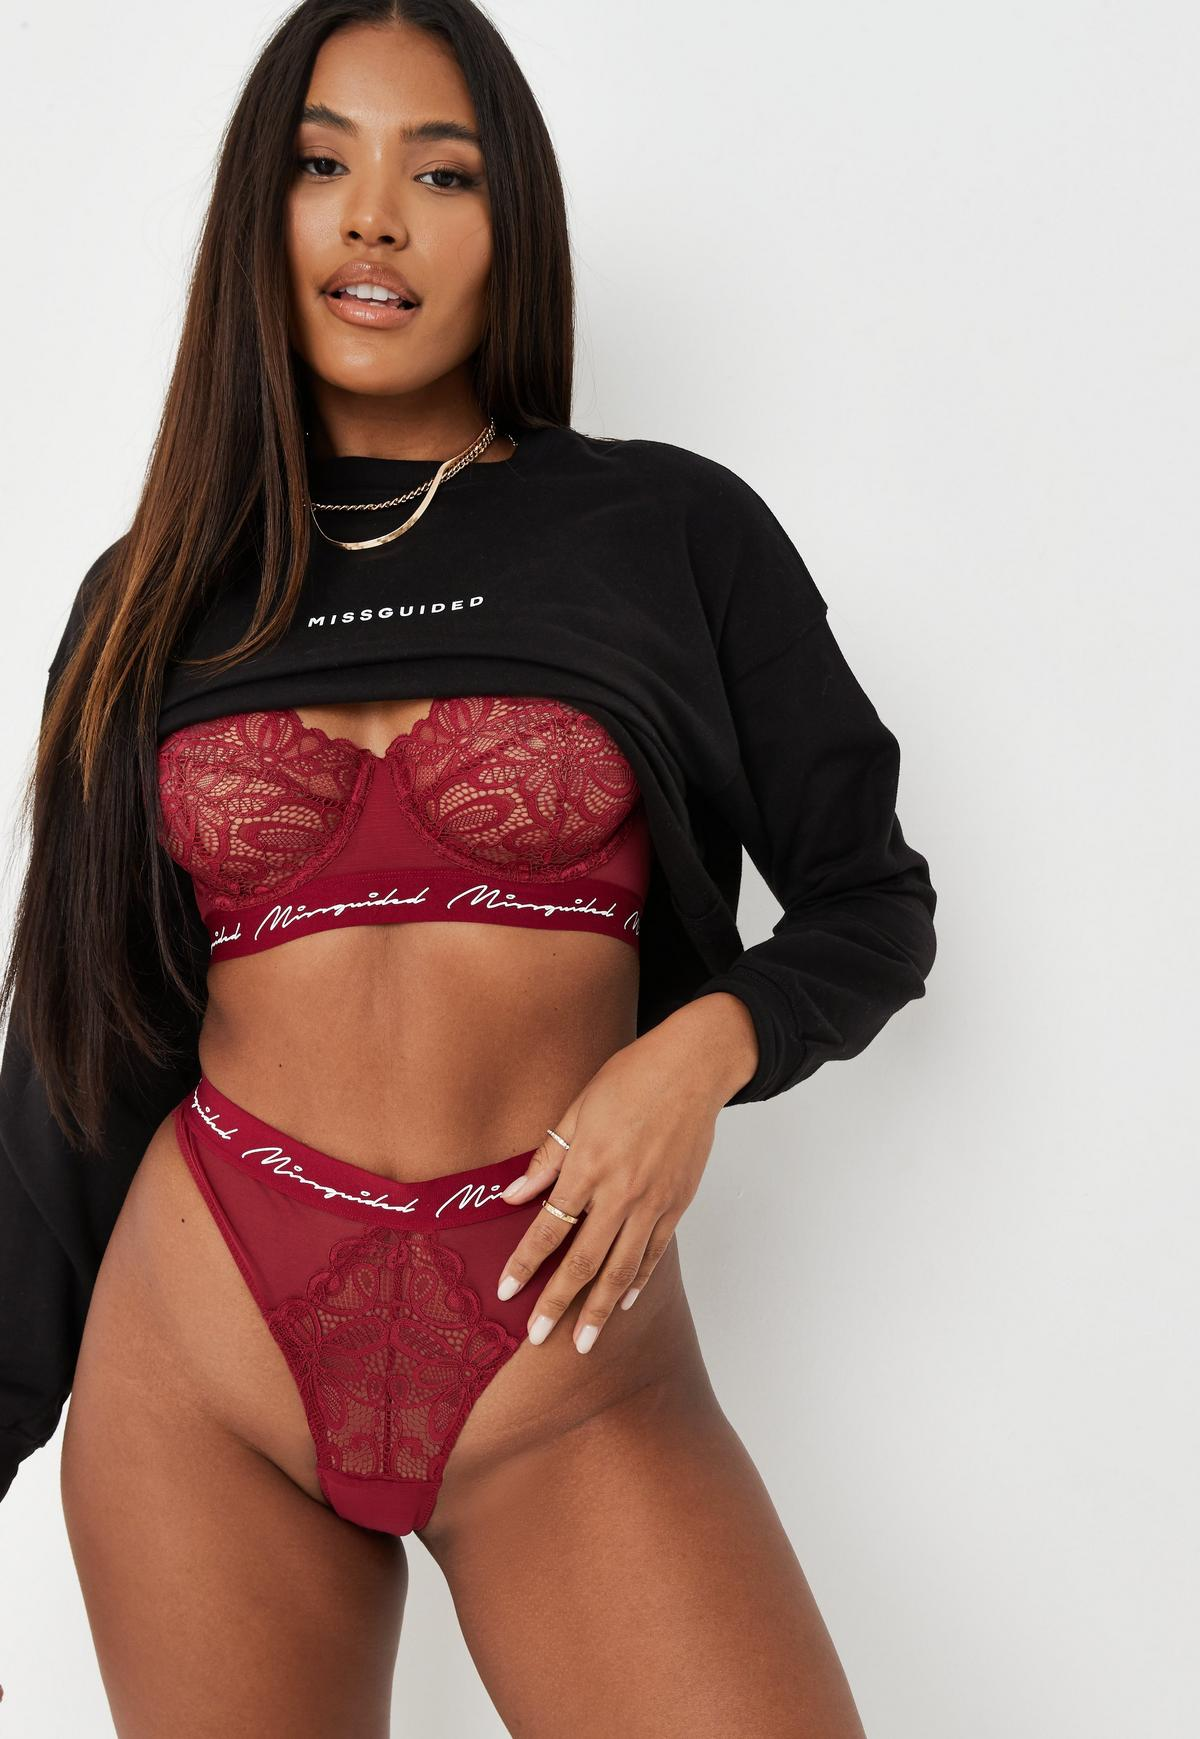 Missguided praised for using models with stretchmarks